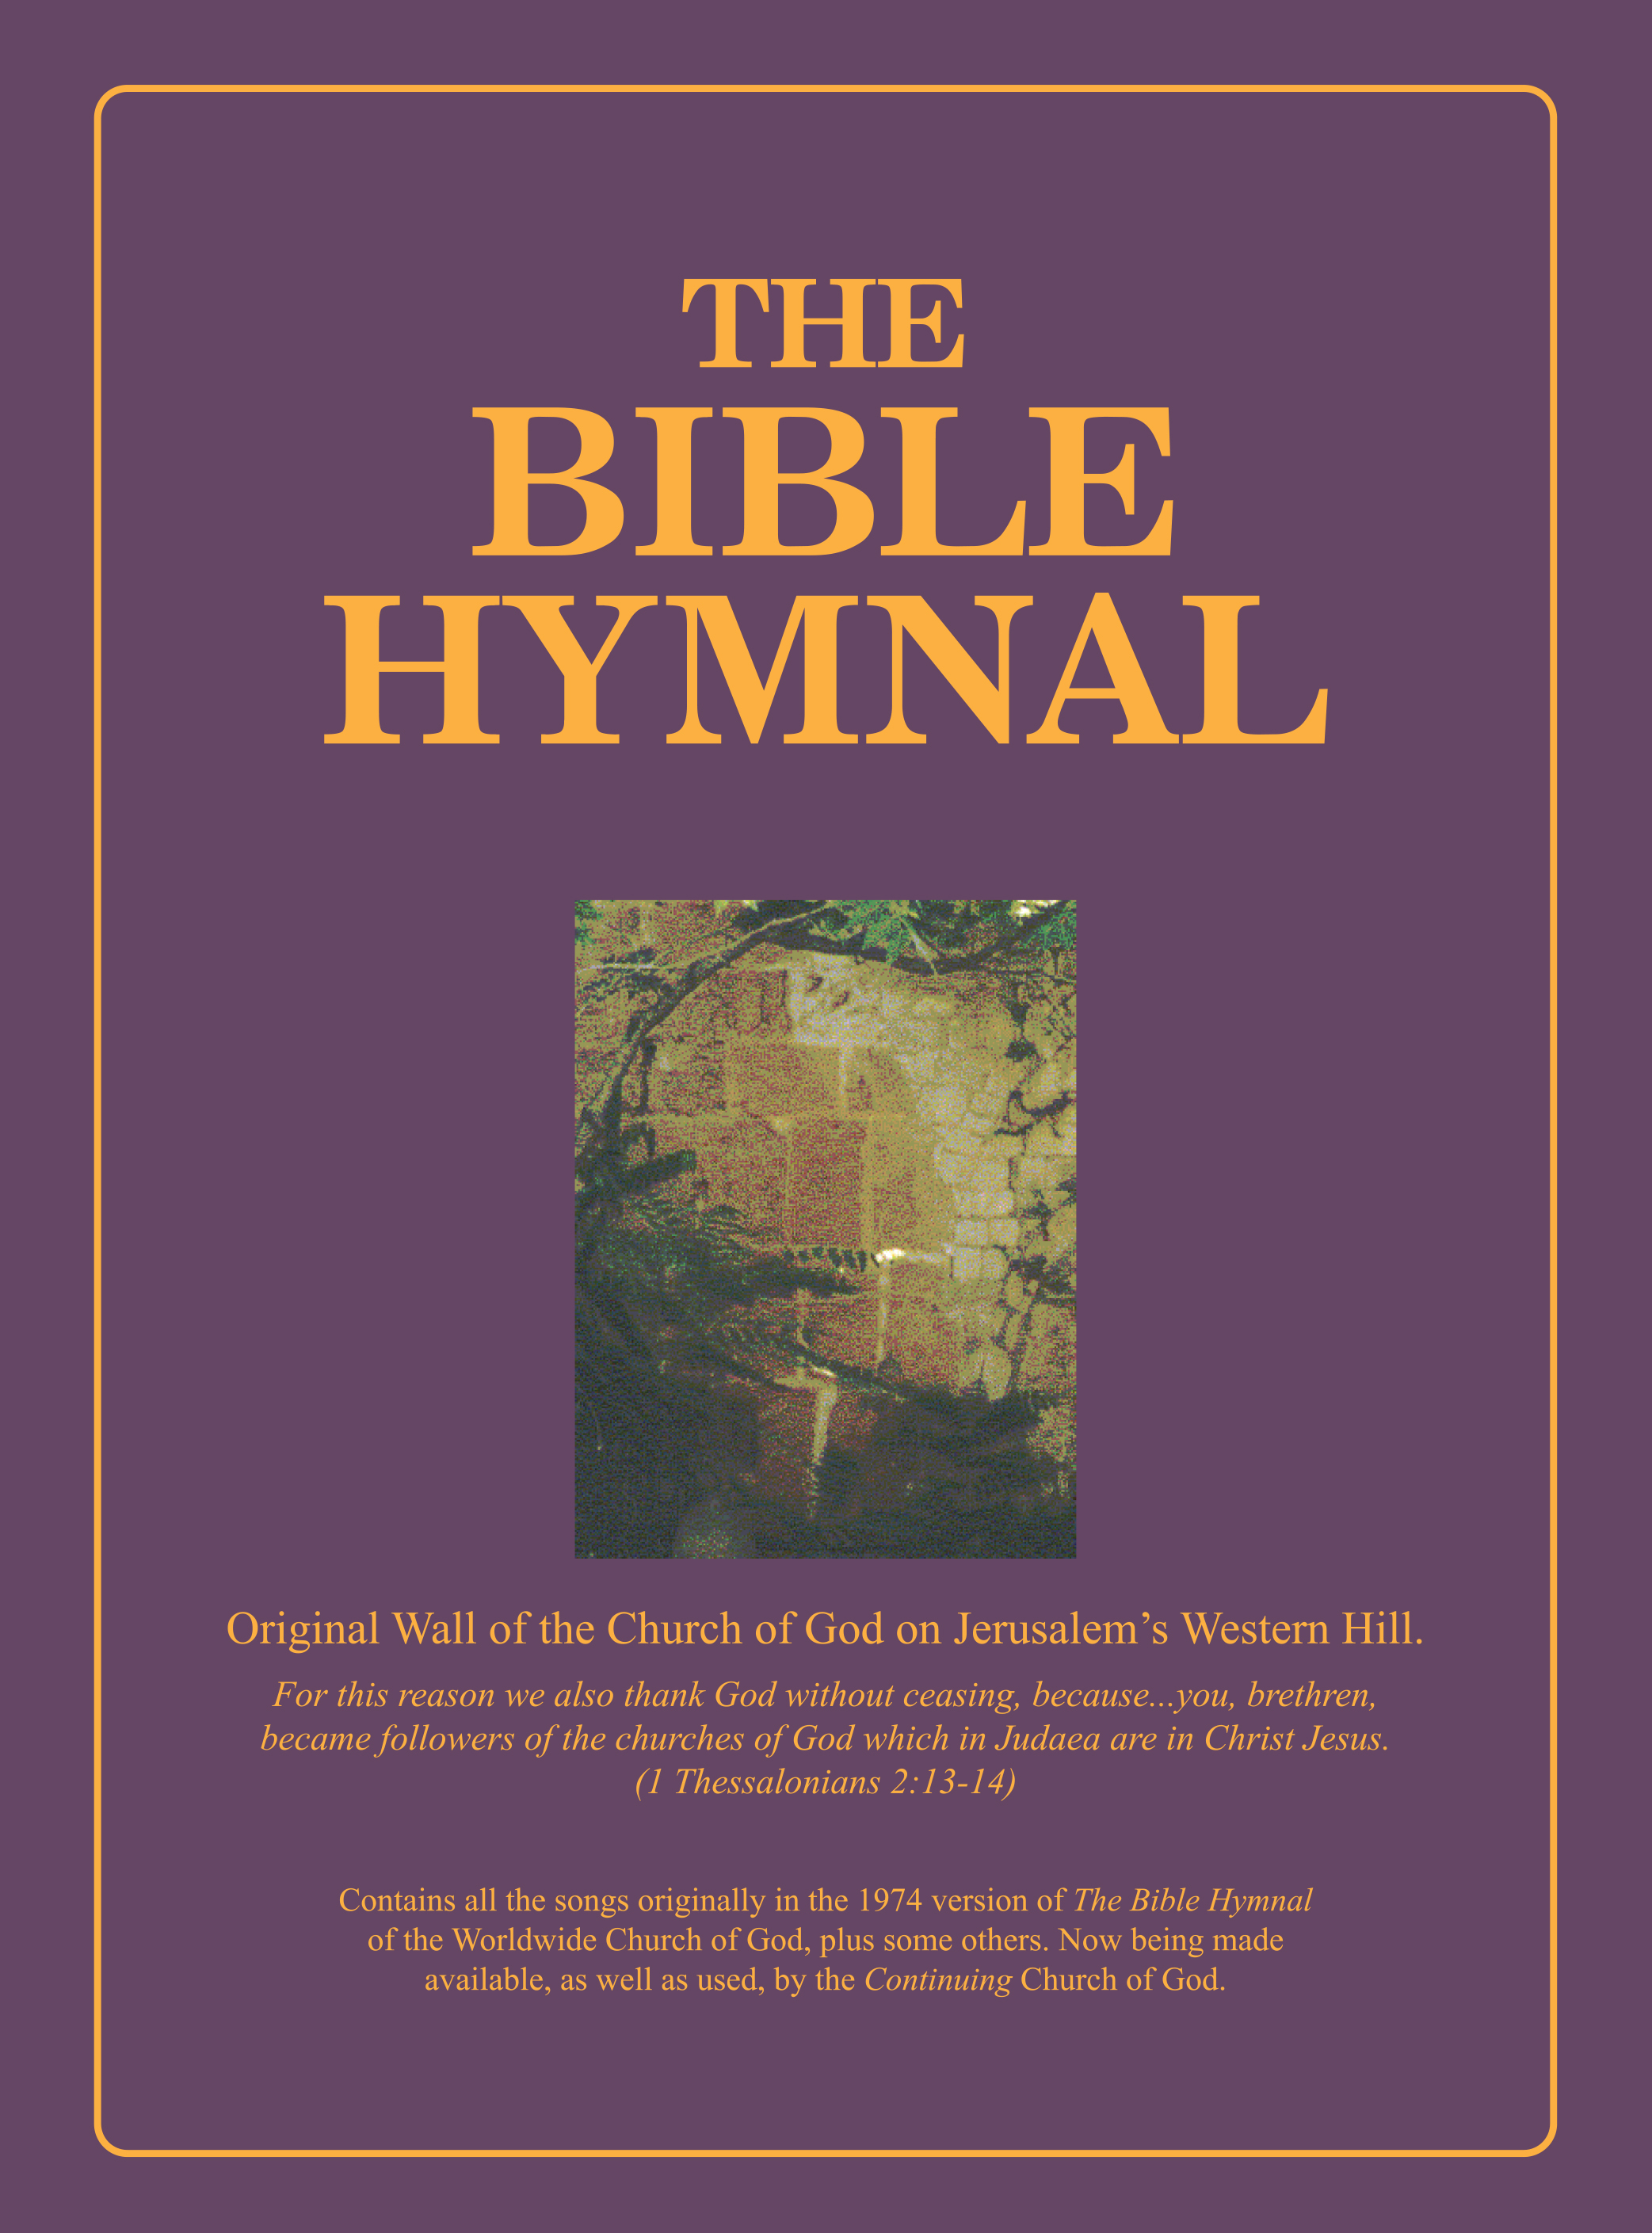 What type of hymns did early Christians sing?